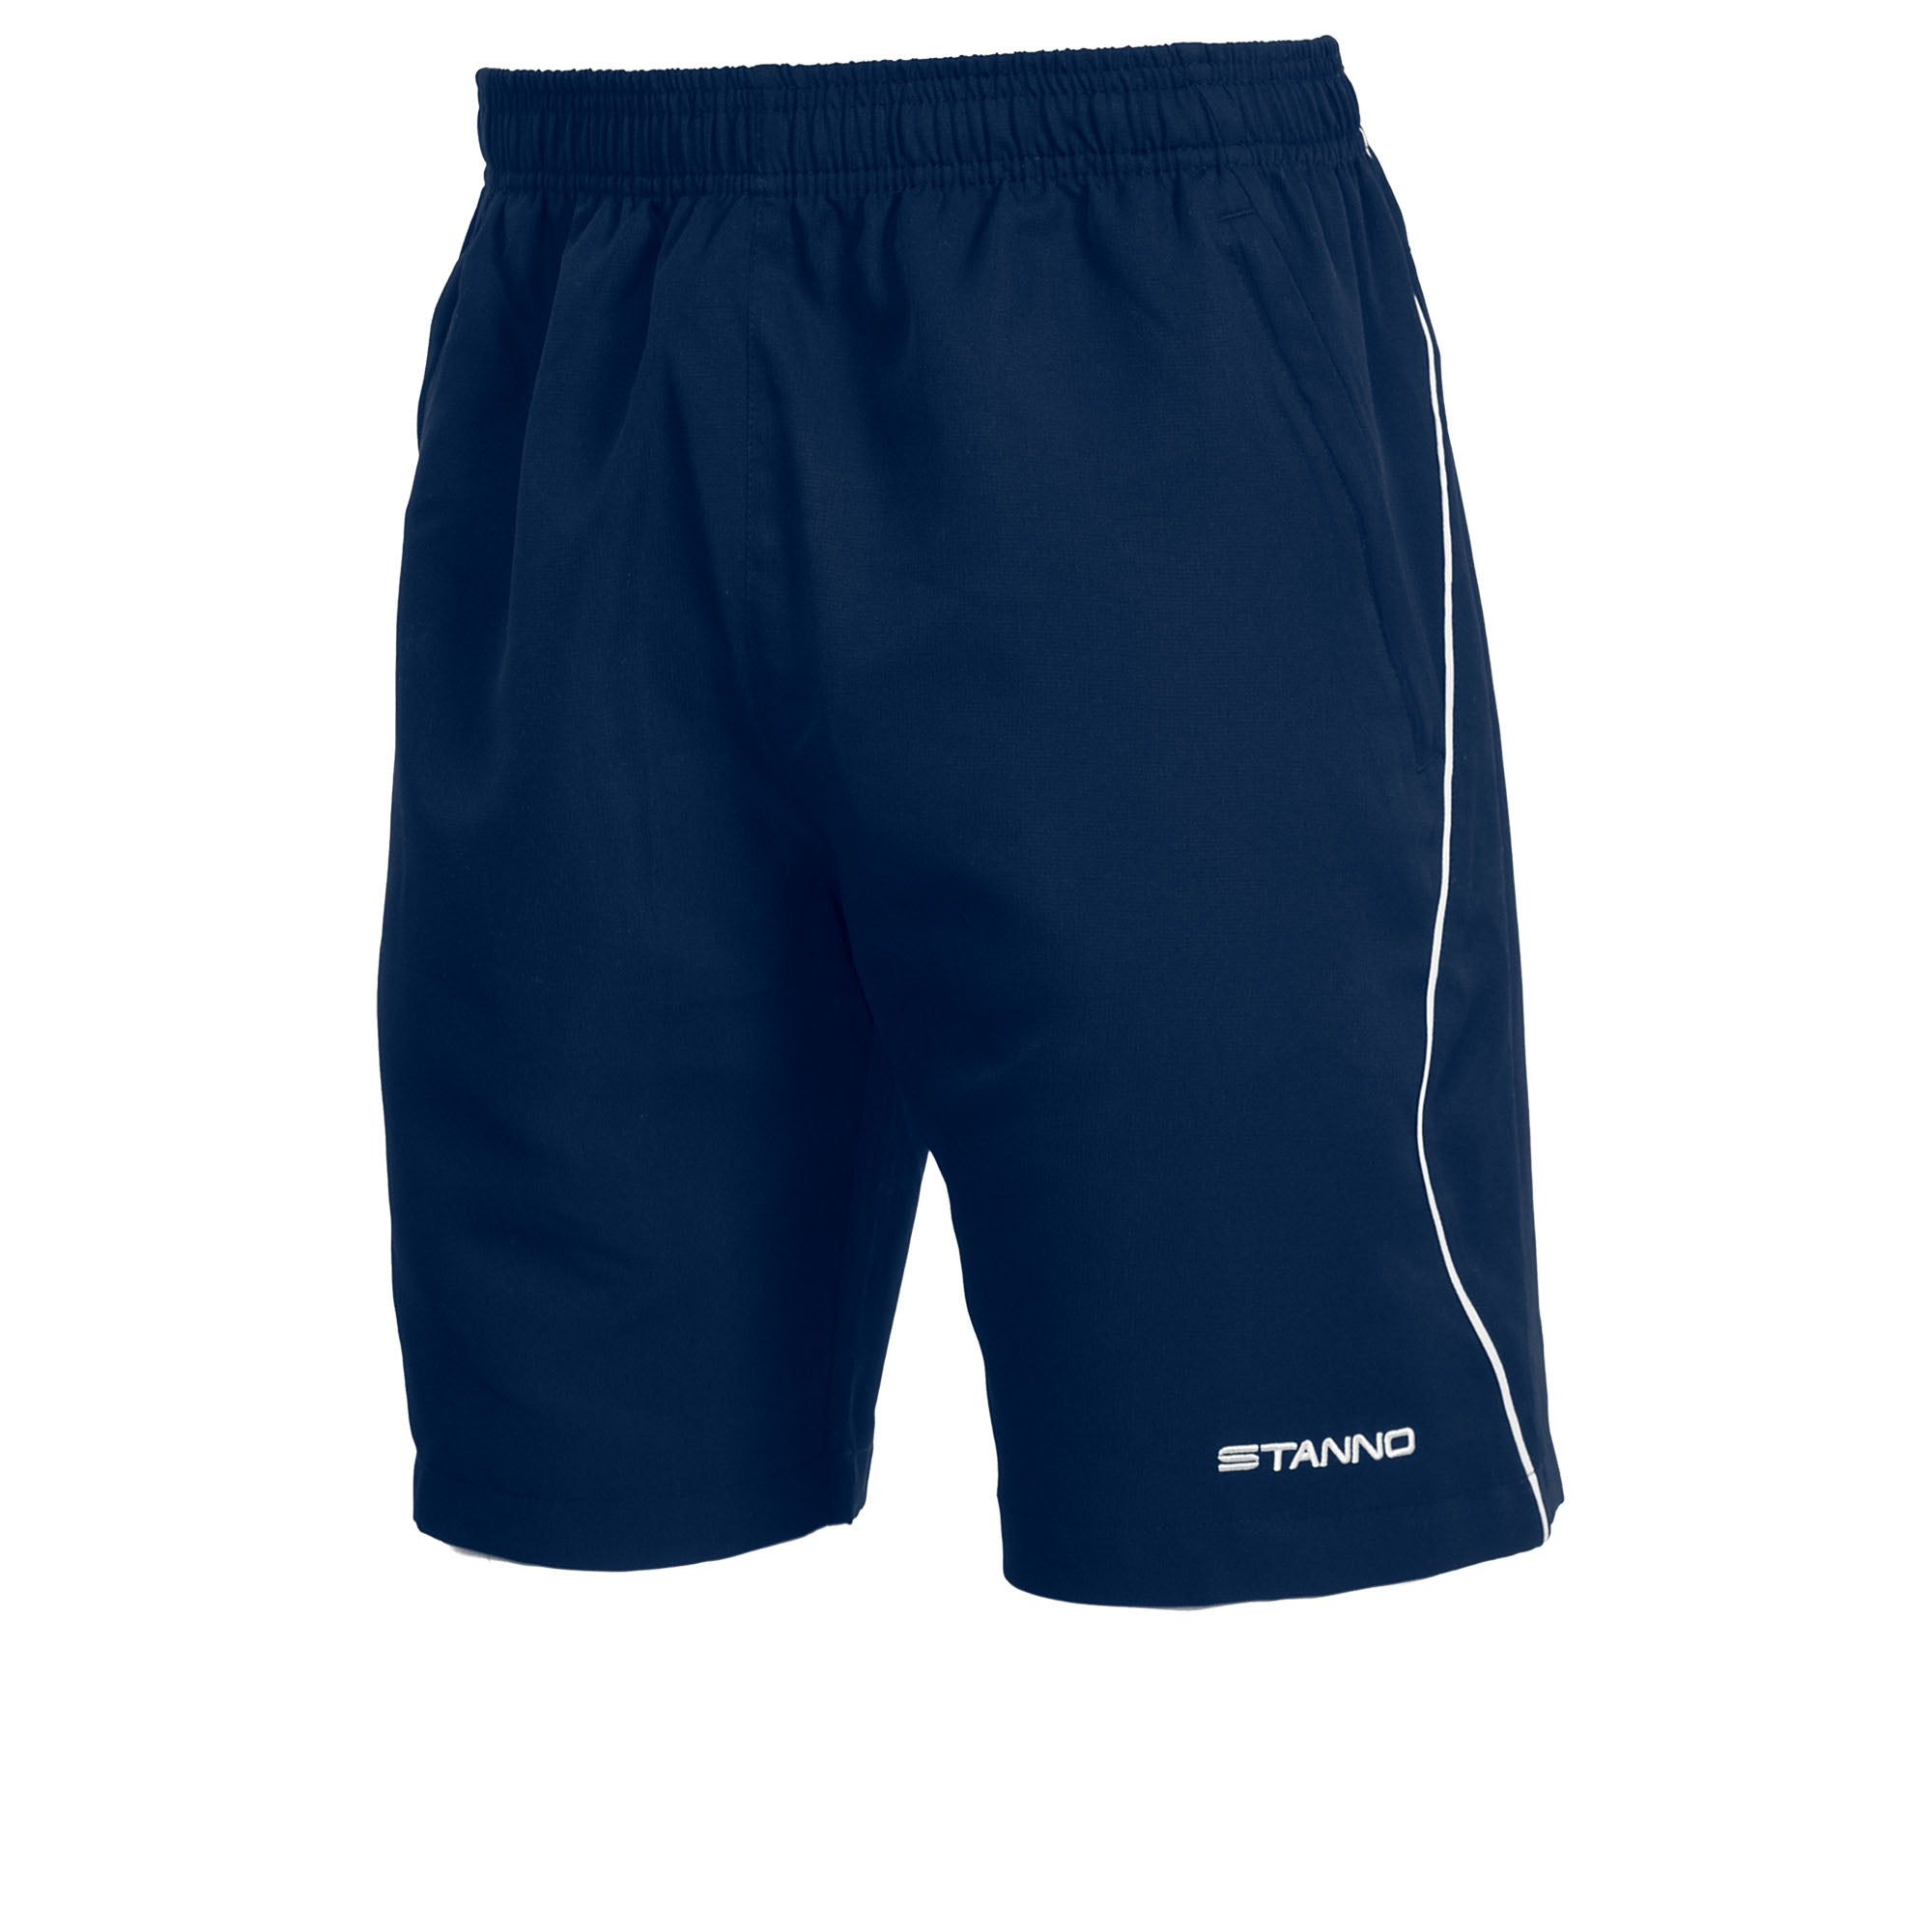 Stanno Centro Micro shorts in navy with white contrast detail down leg and white Stanno text logo